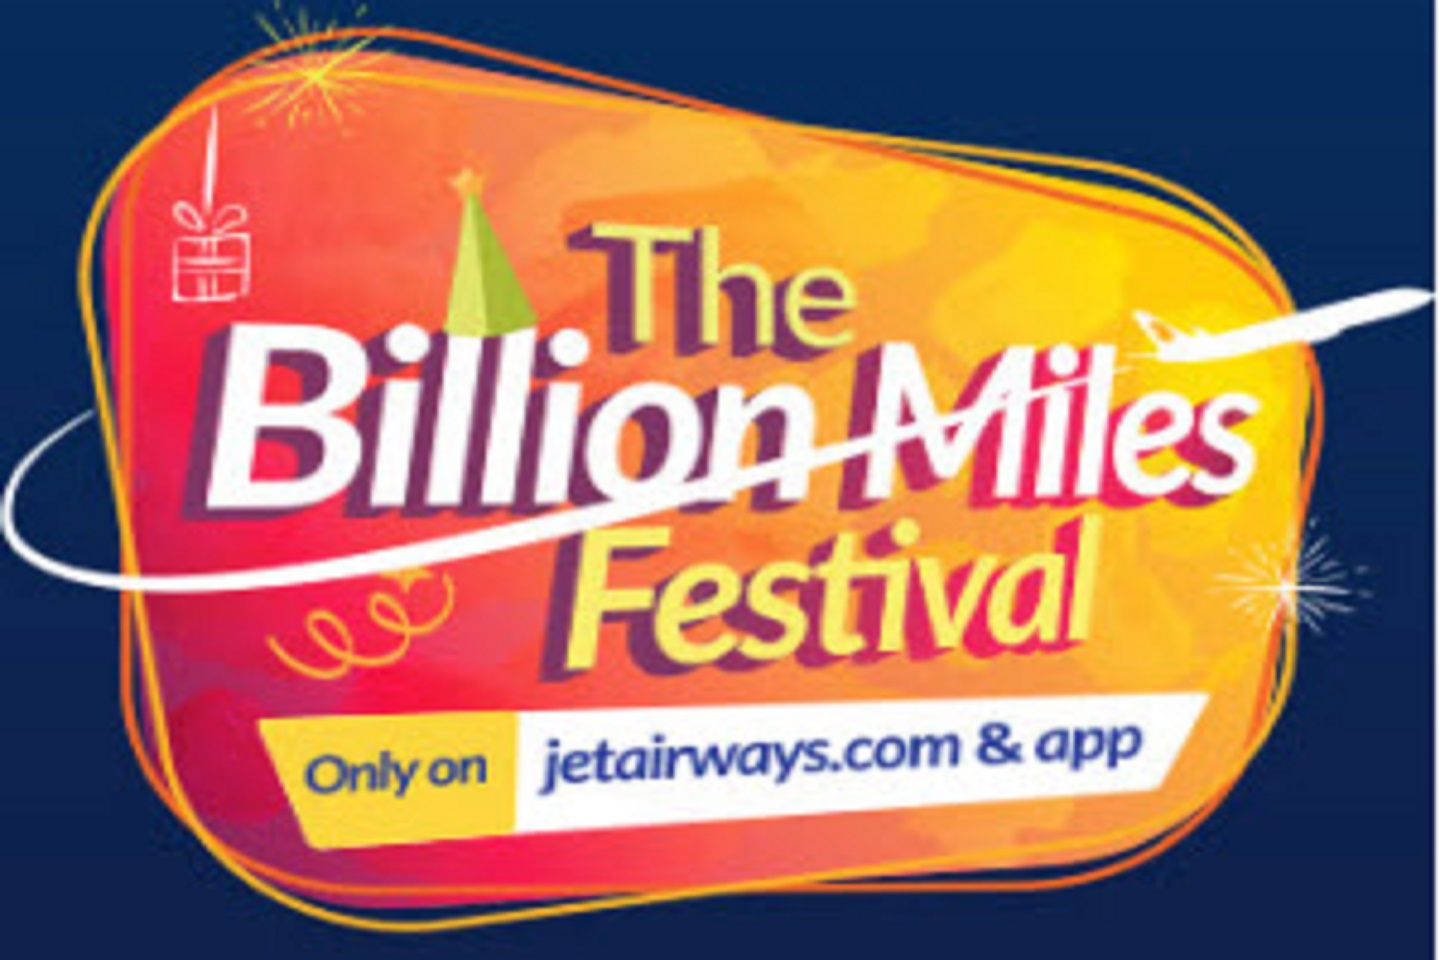 Billion Miles Festival launched by Jet Airways